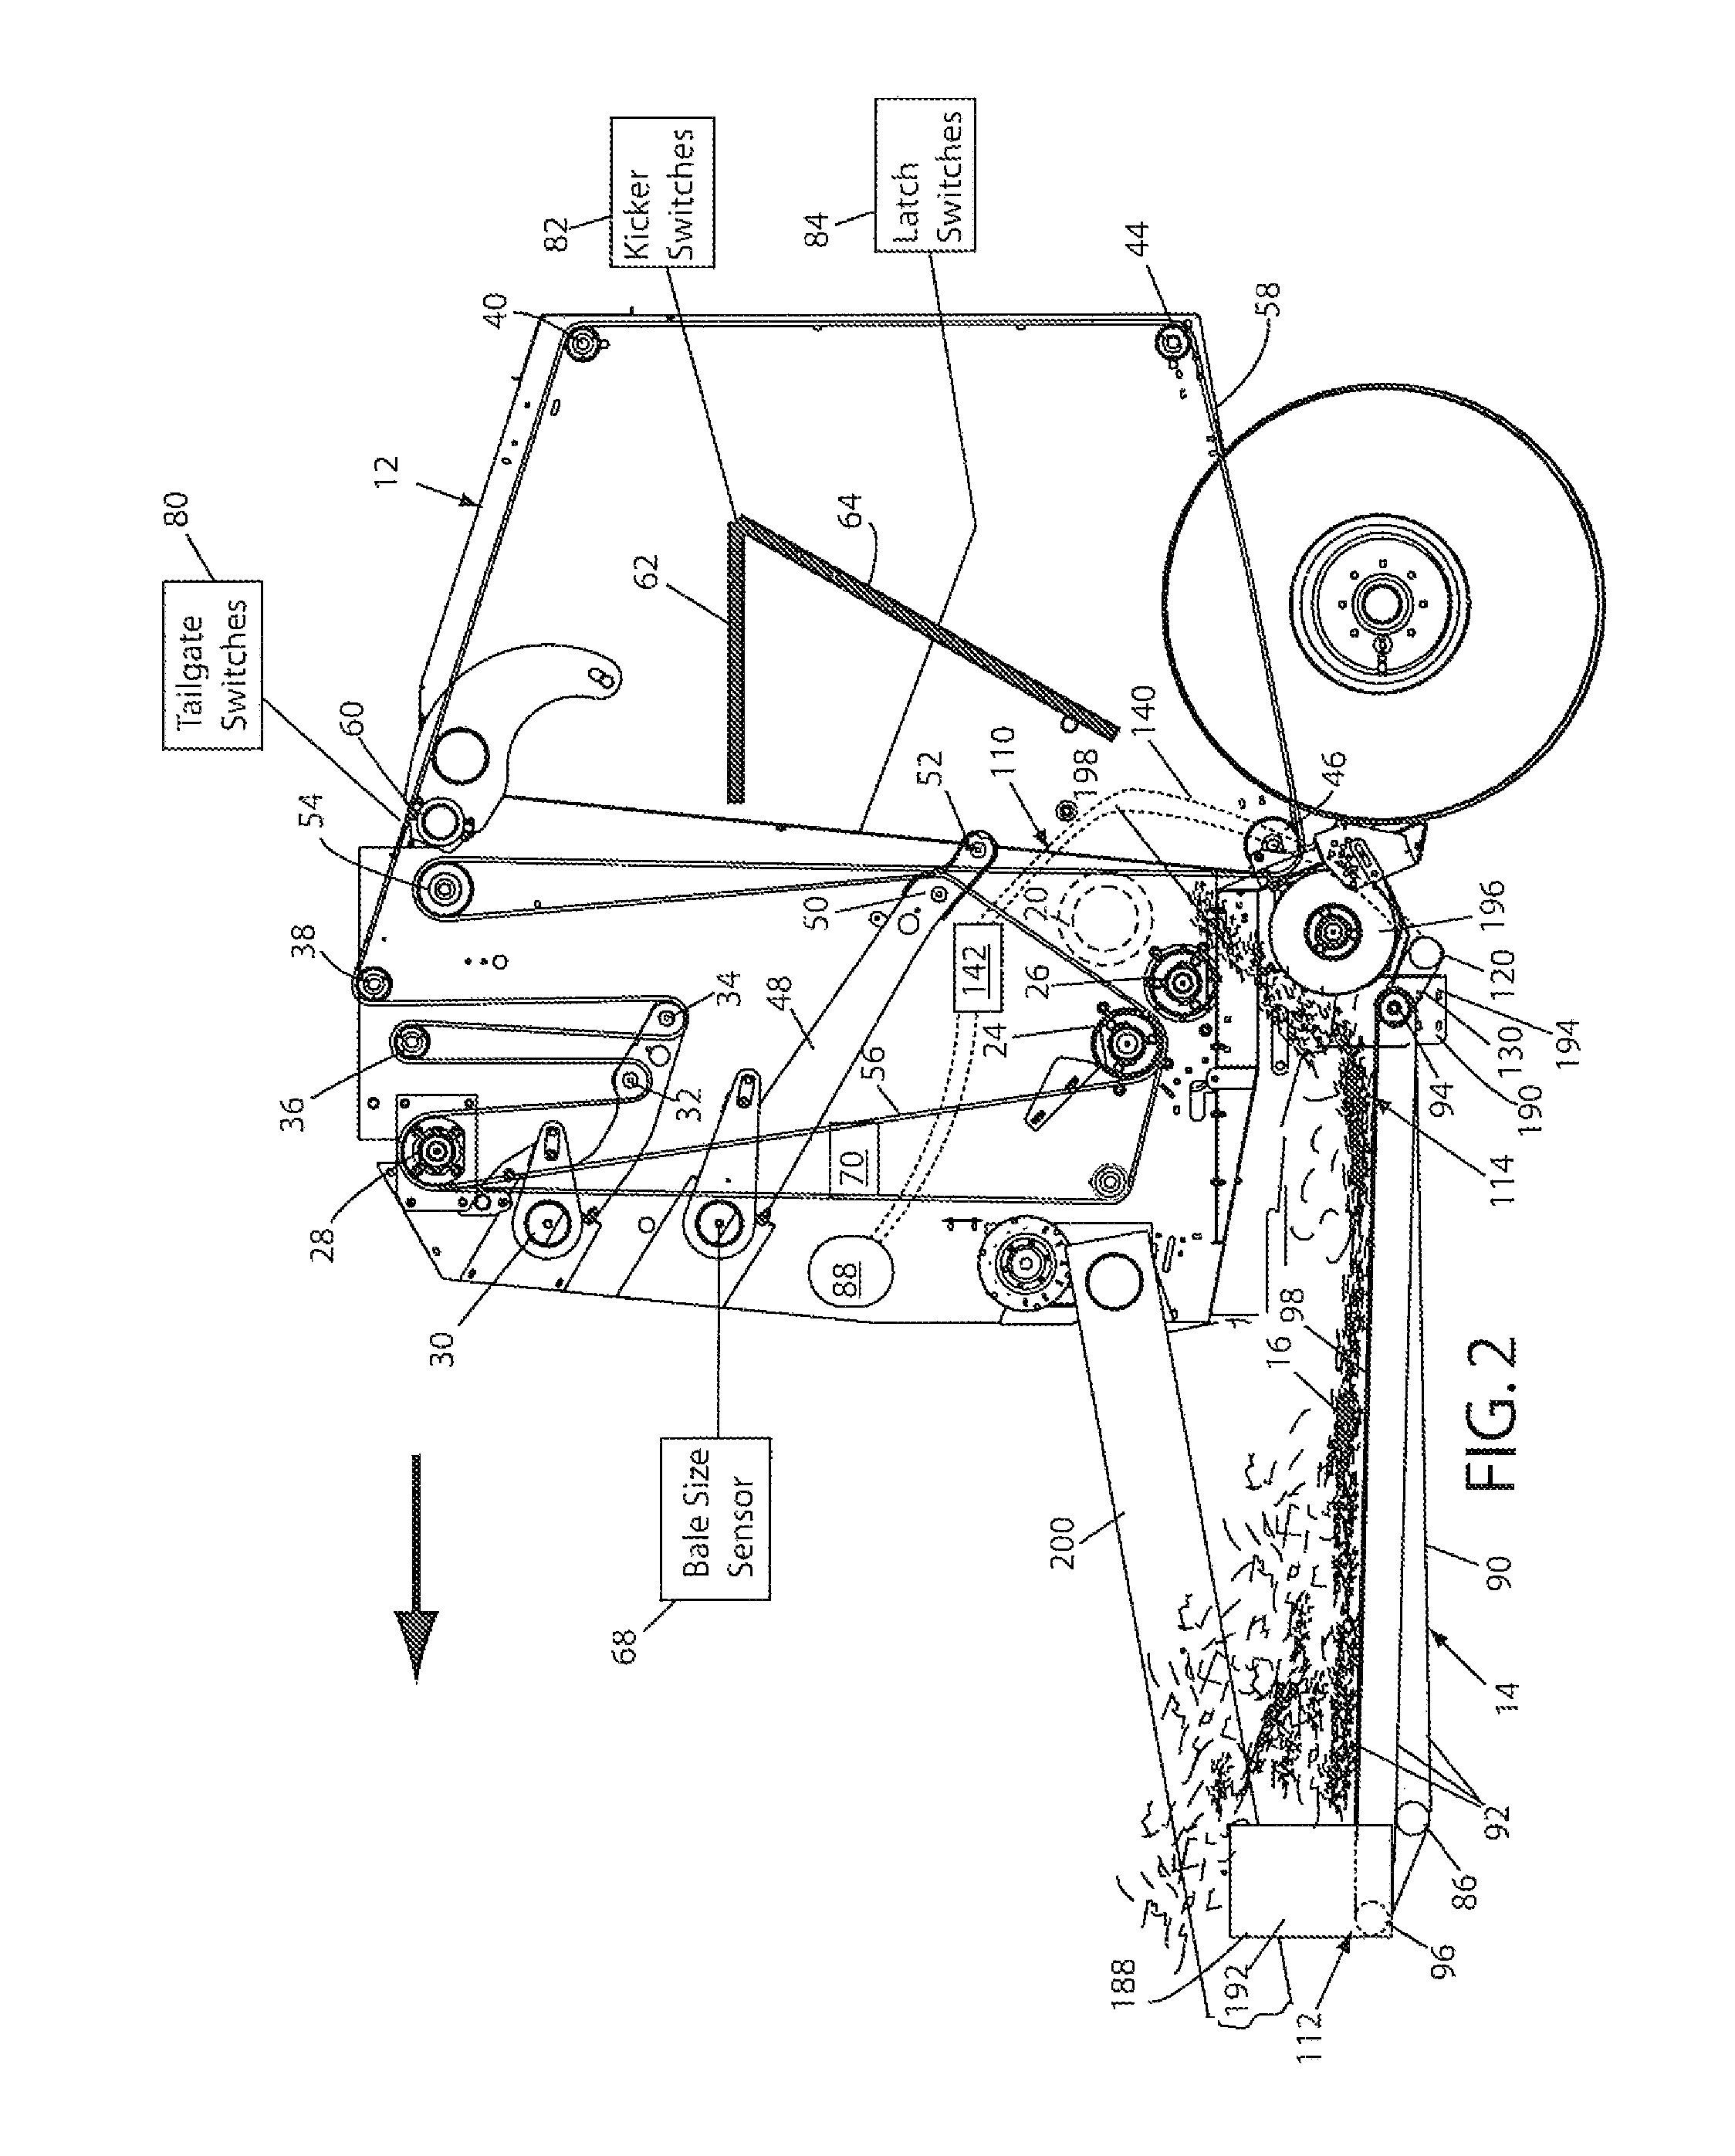 Hydraulic System Diagram likewise John Deere Hay Baler Parts likewise Economy Baler Wiring Diagram further John Deere 335 375 385 435 535 Round Balers Technical Manual Tm 1472 likewise John Deere 466 Round Baler Parts Diagram. on wiring diagrams for balers